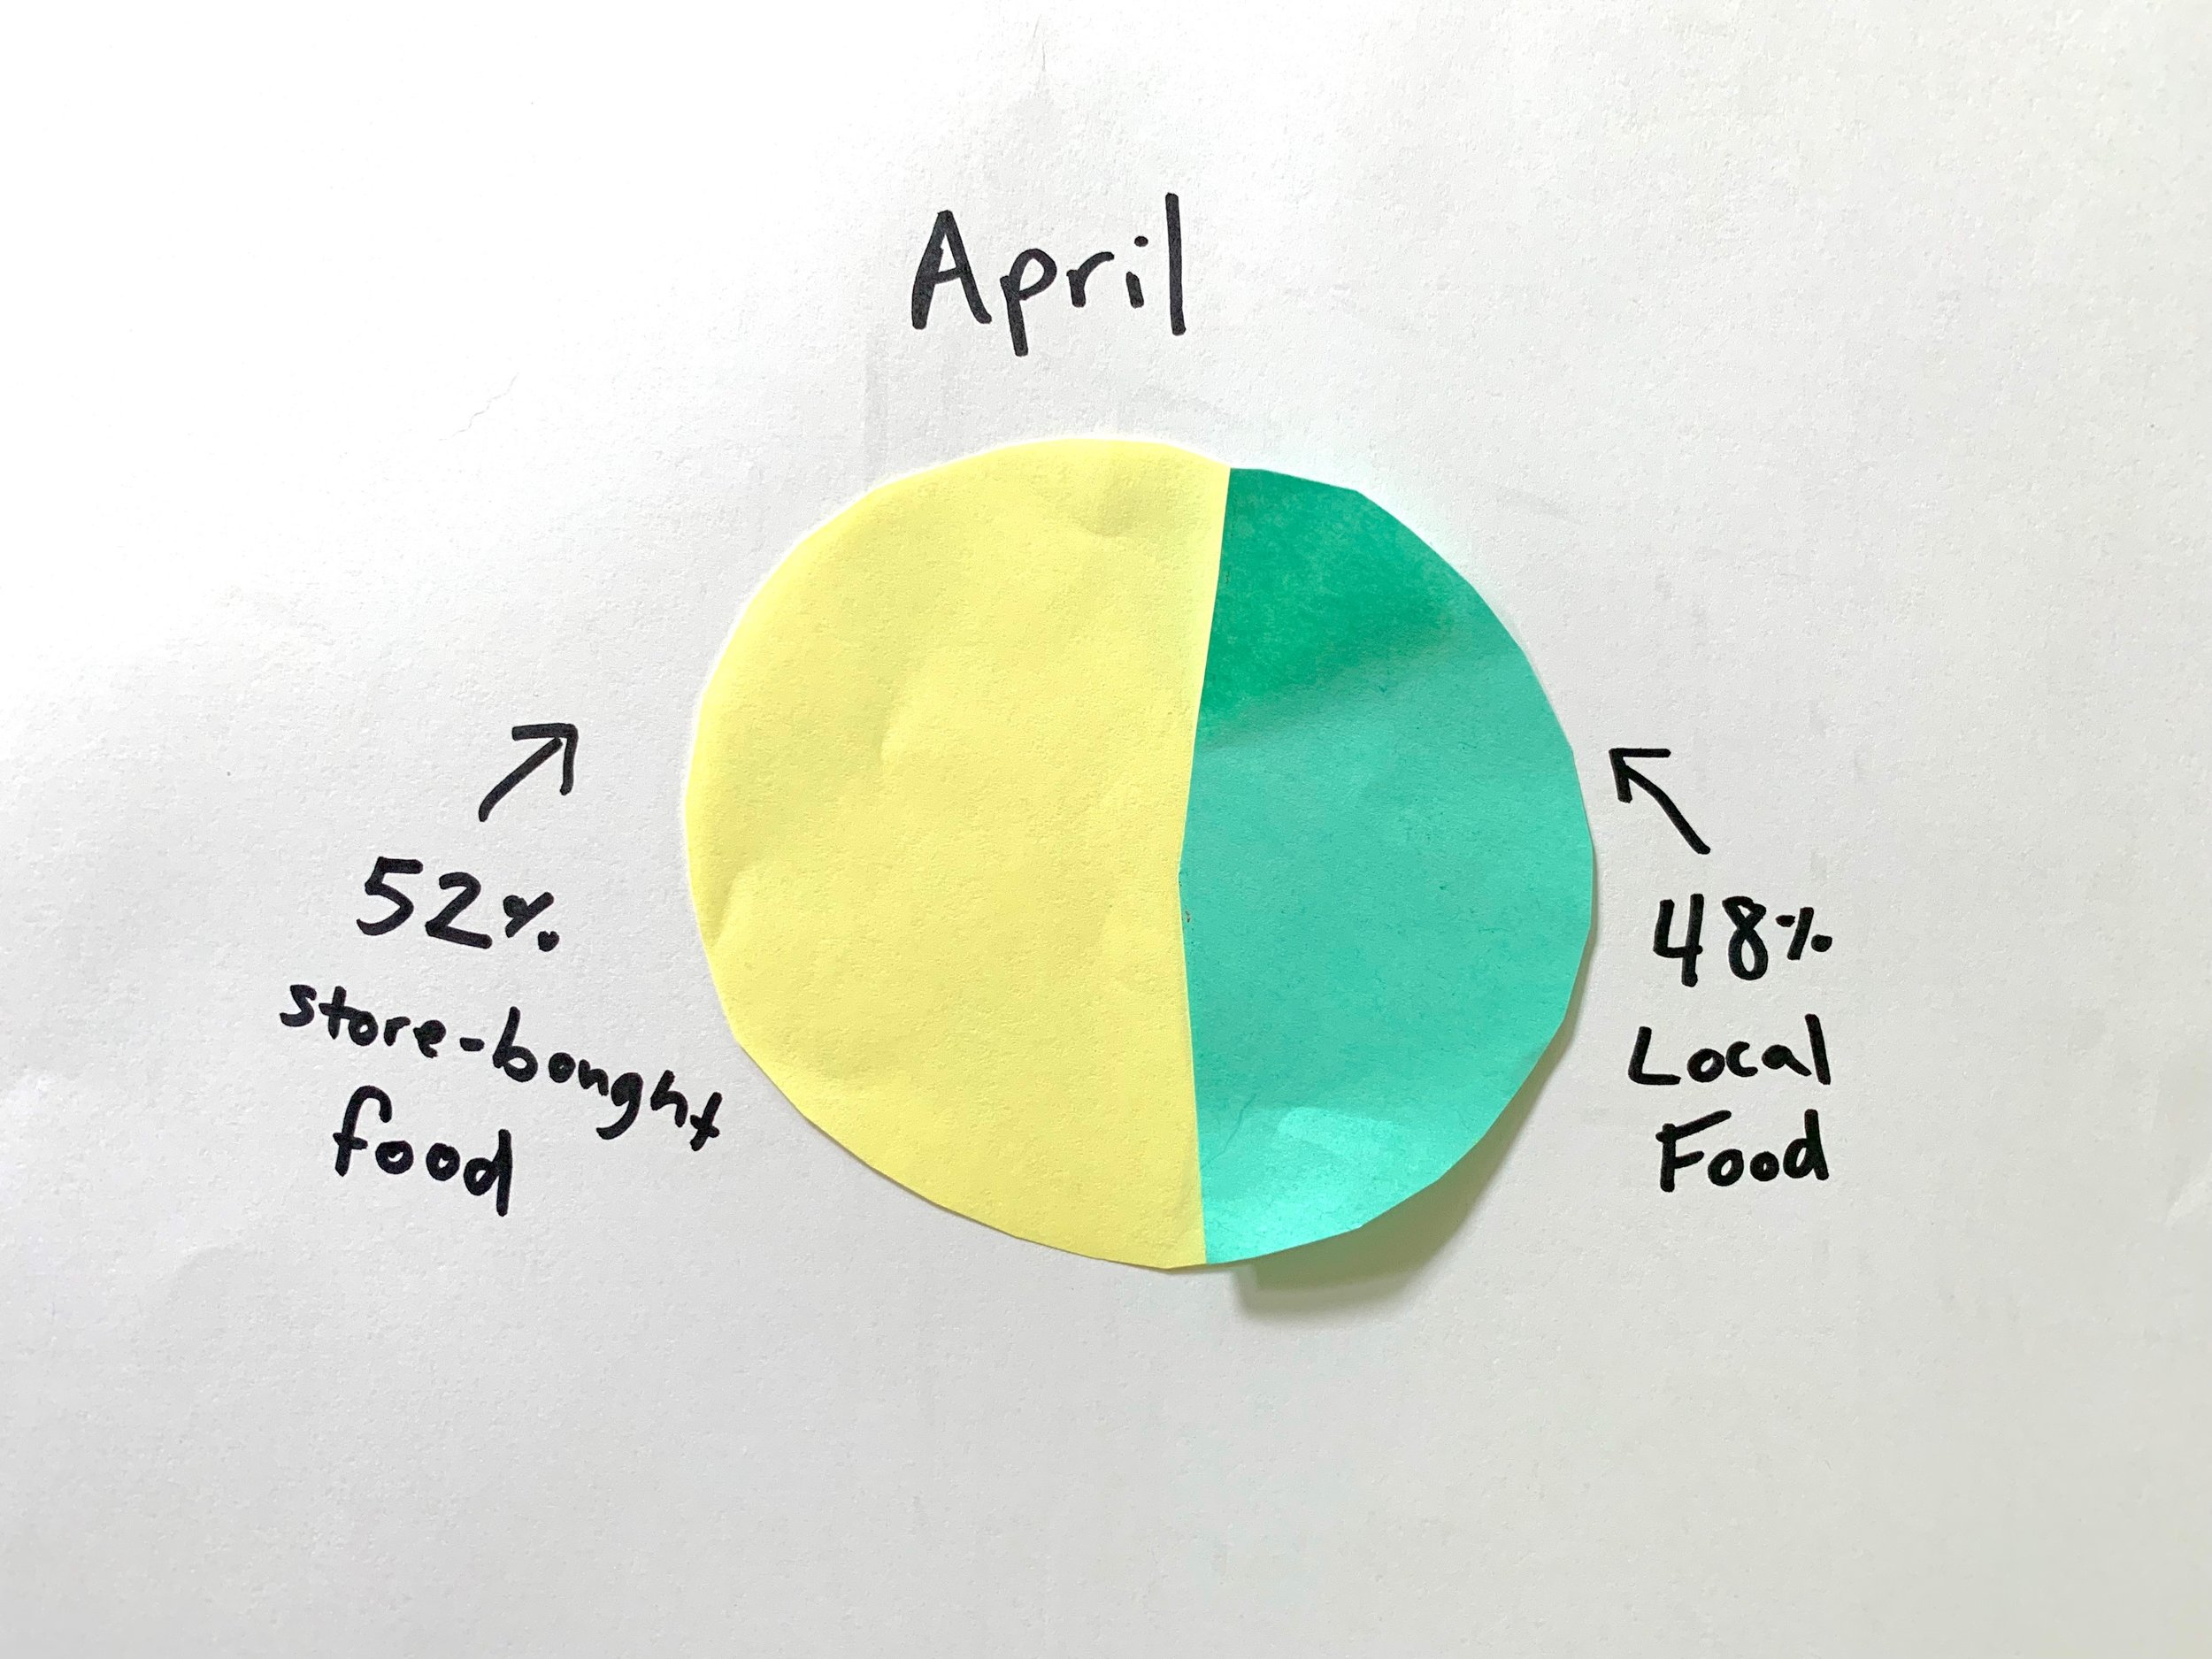 From 47% local food in March to 48% in April